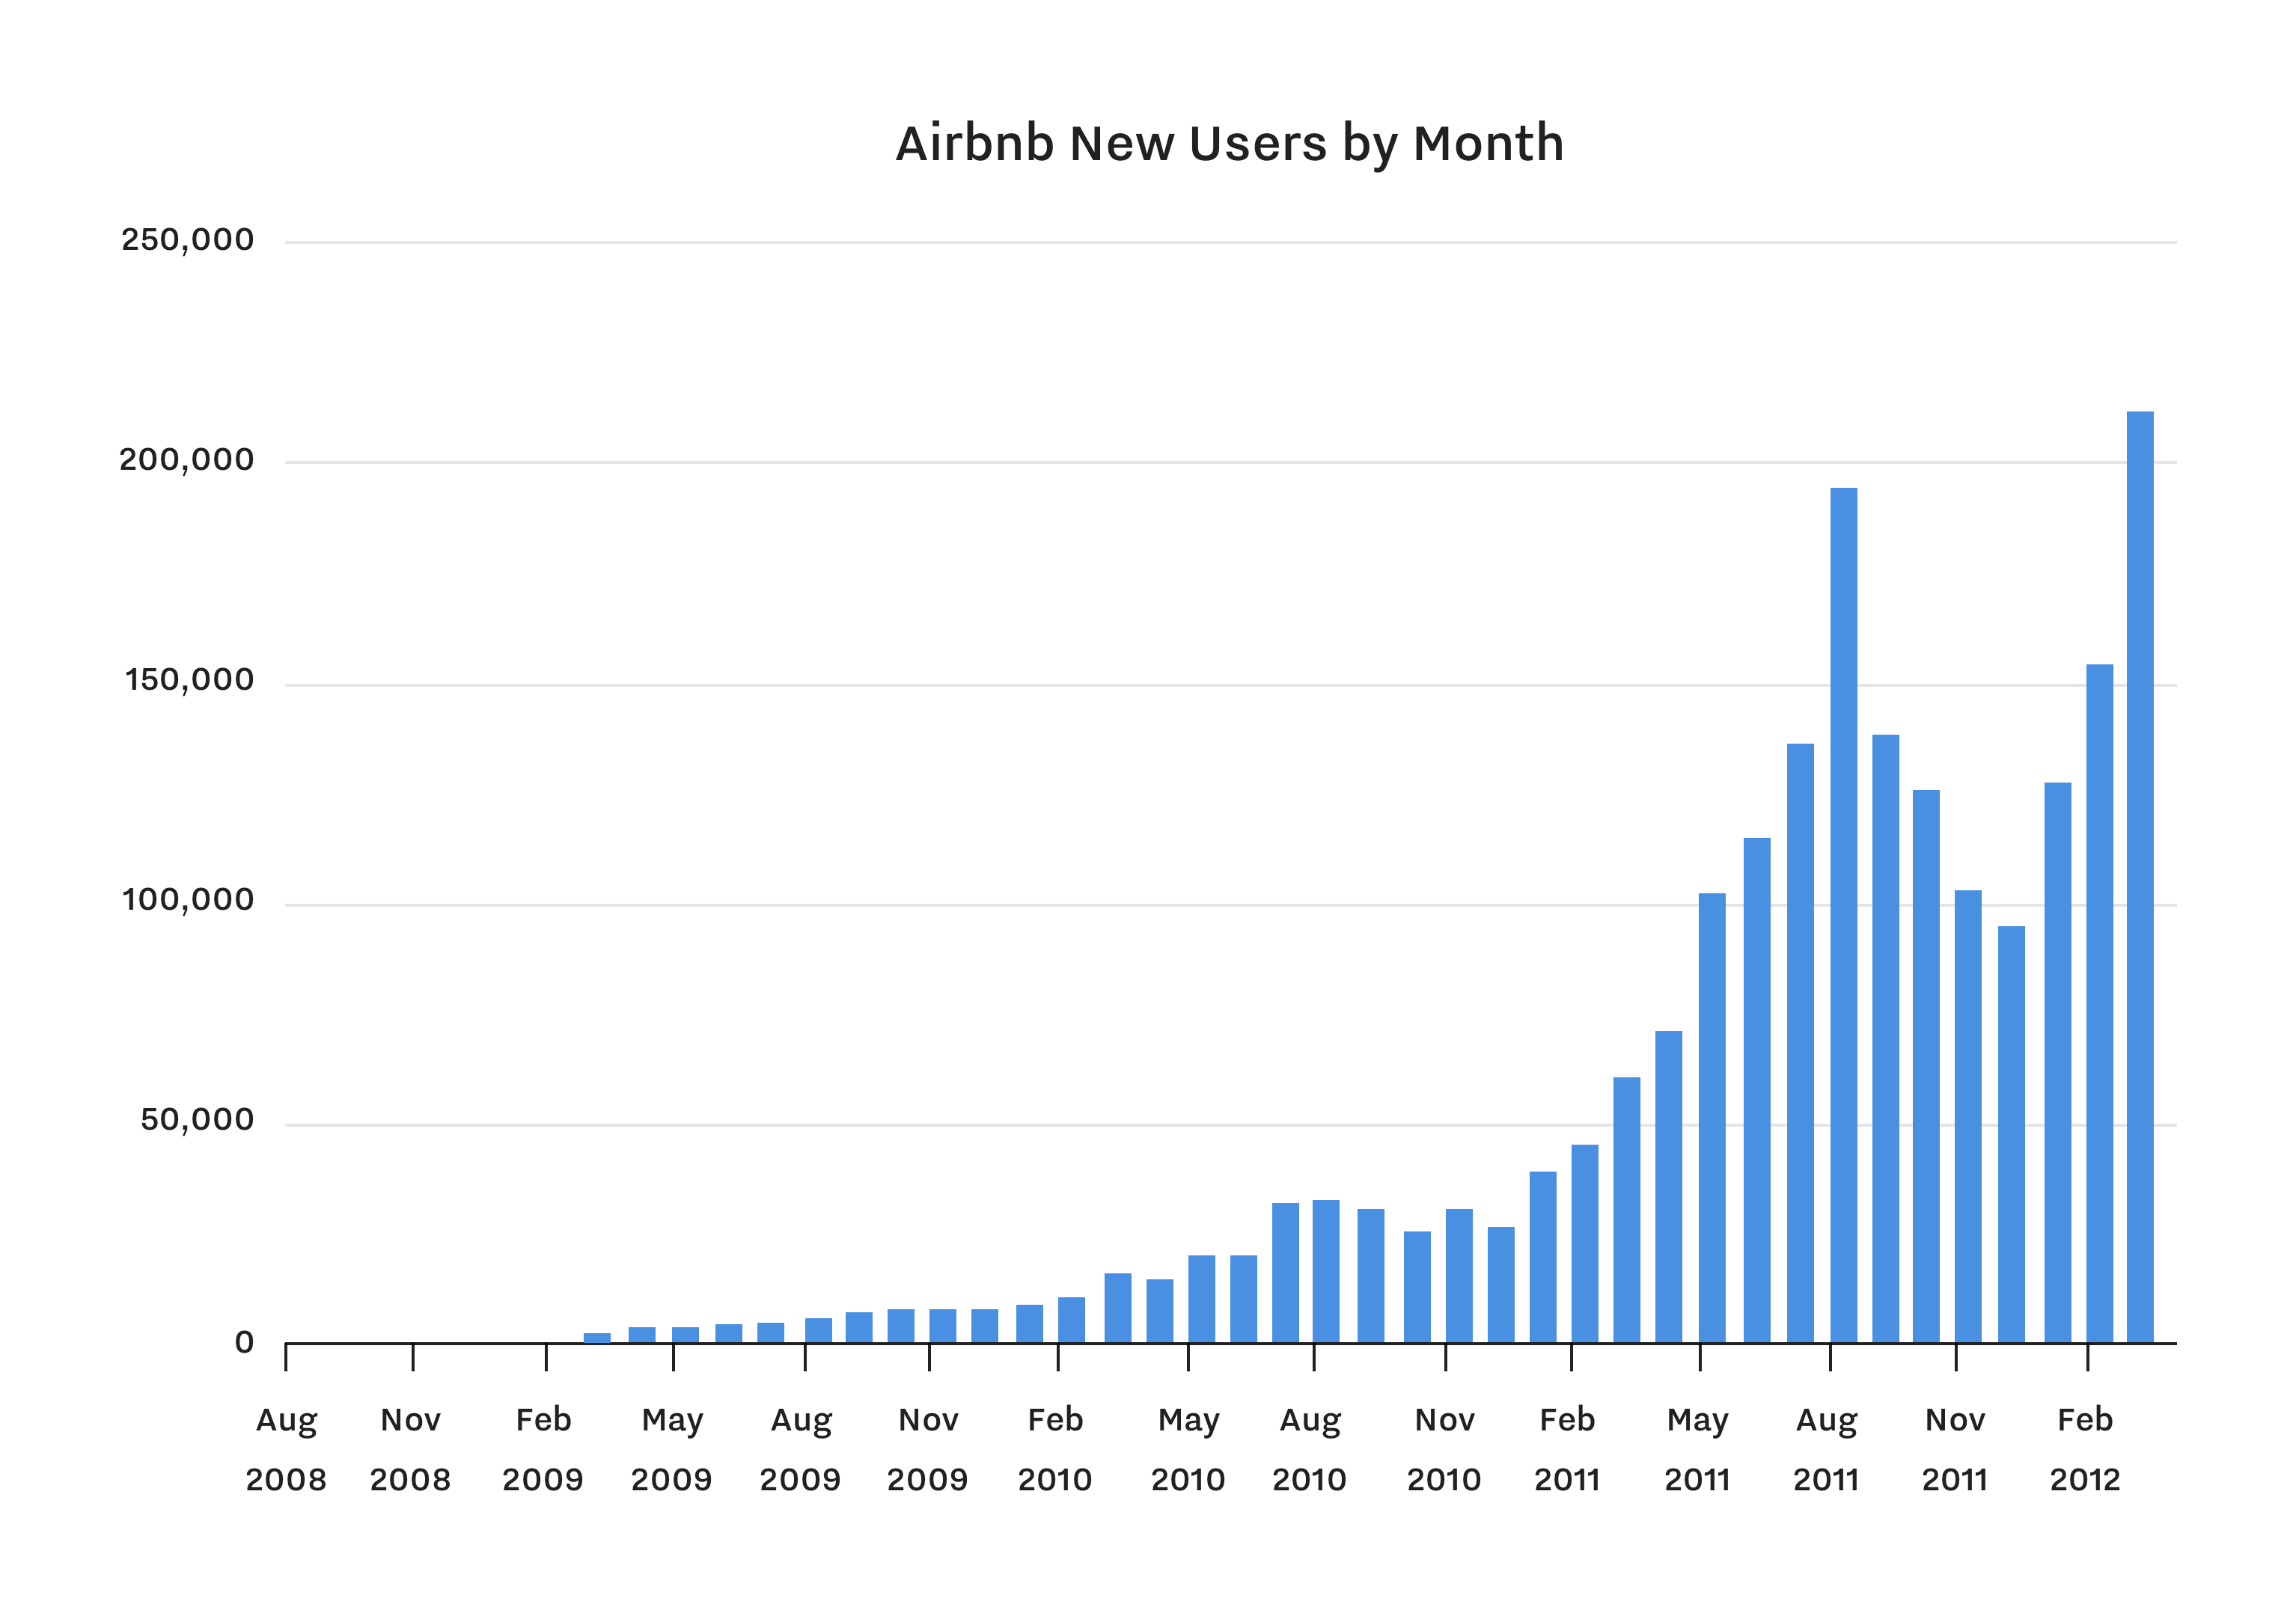 Airbnb New Users By Month